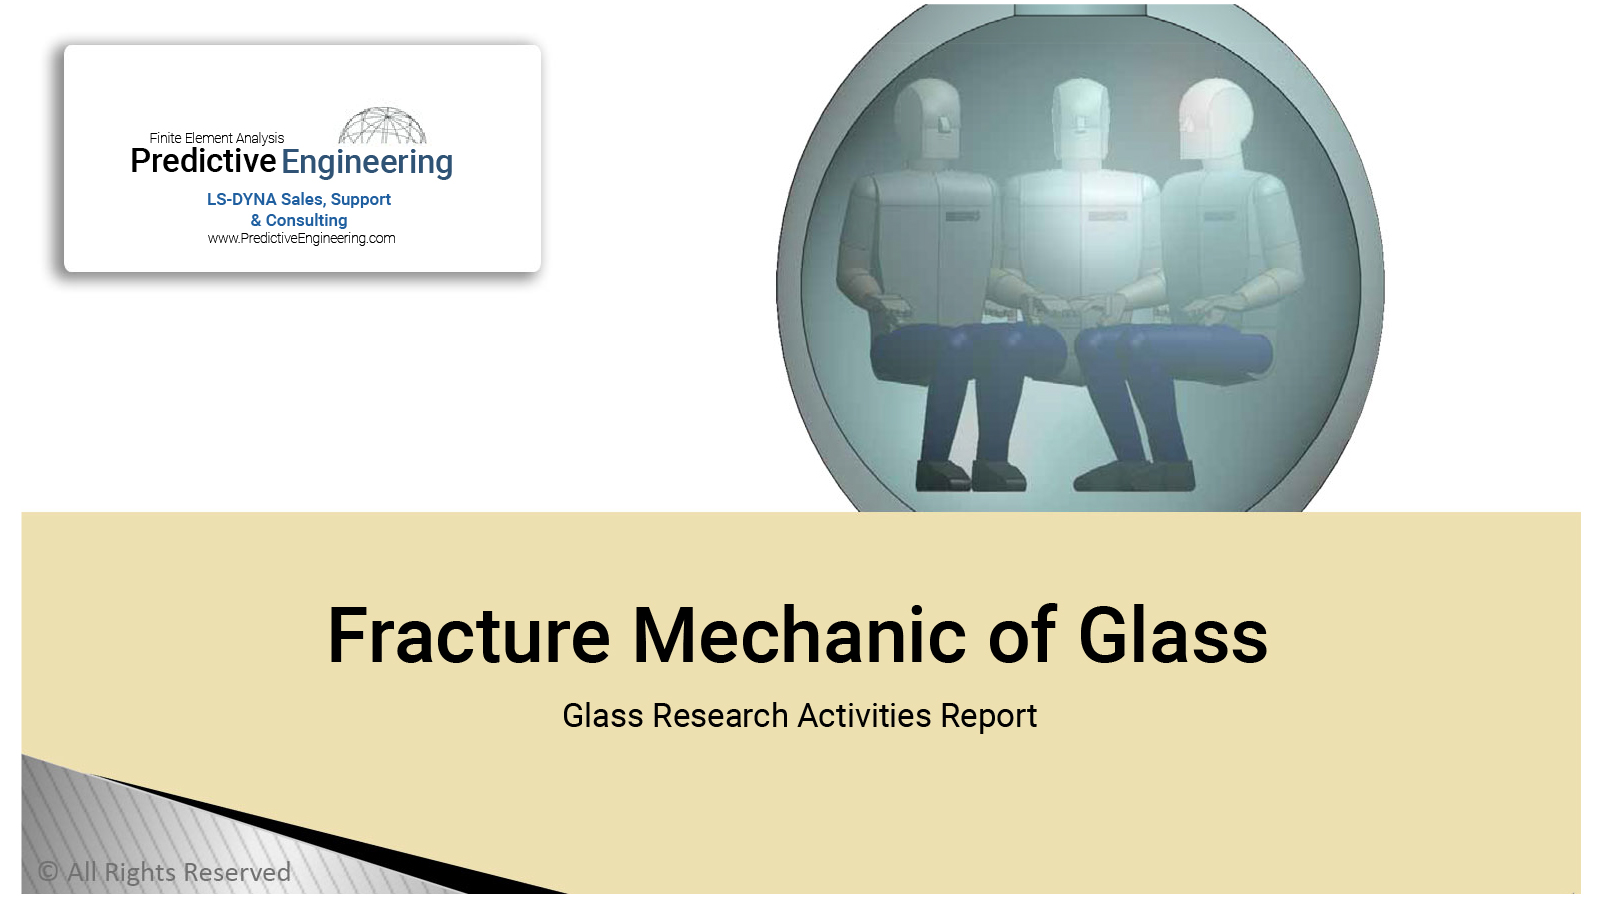 Fracture Mechanics of Glass Image